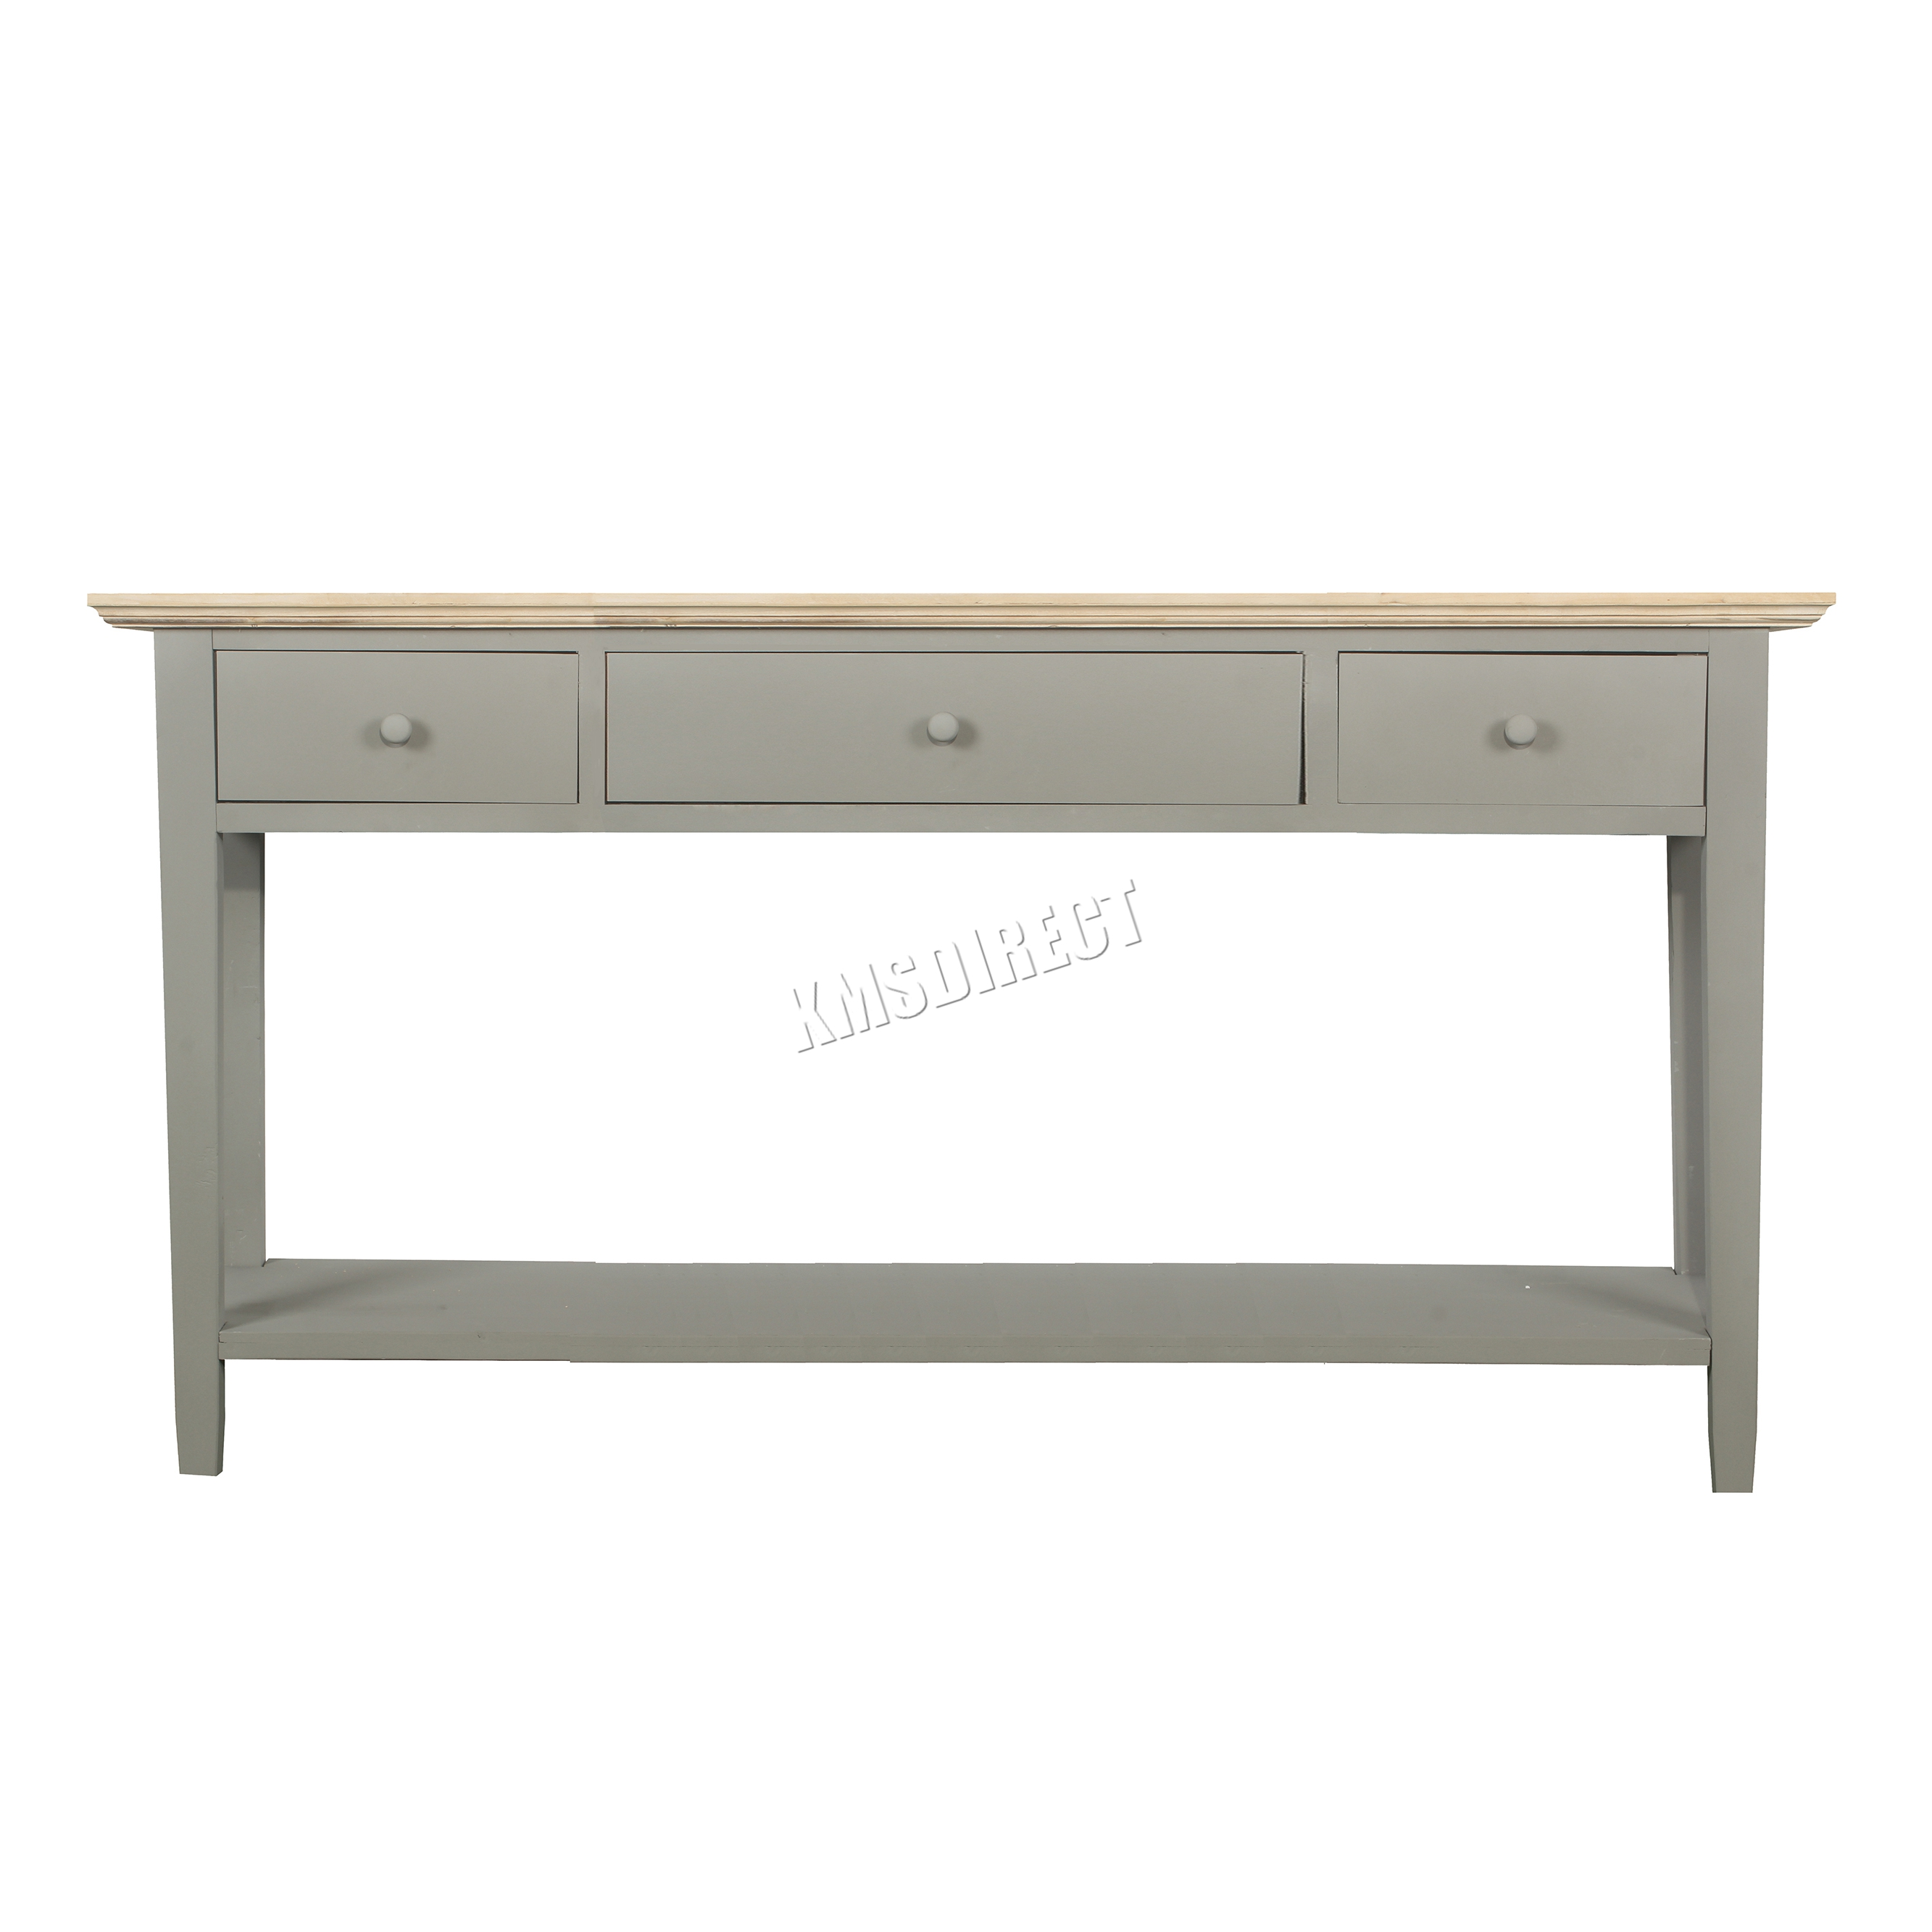 Foxhunter console table 3 drawers wood hallway side for Table th tf 00 02